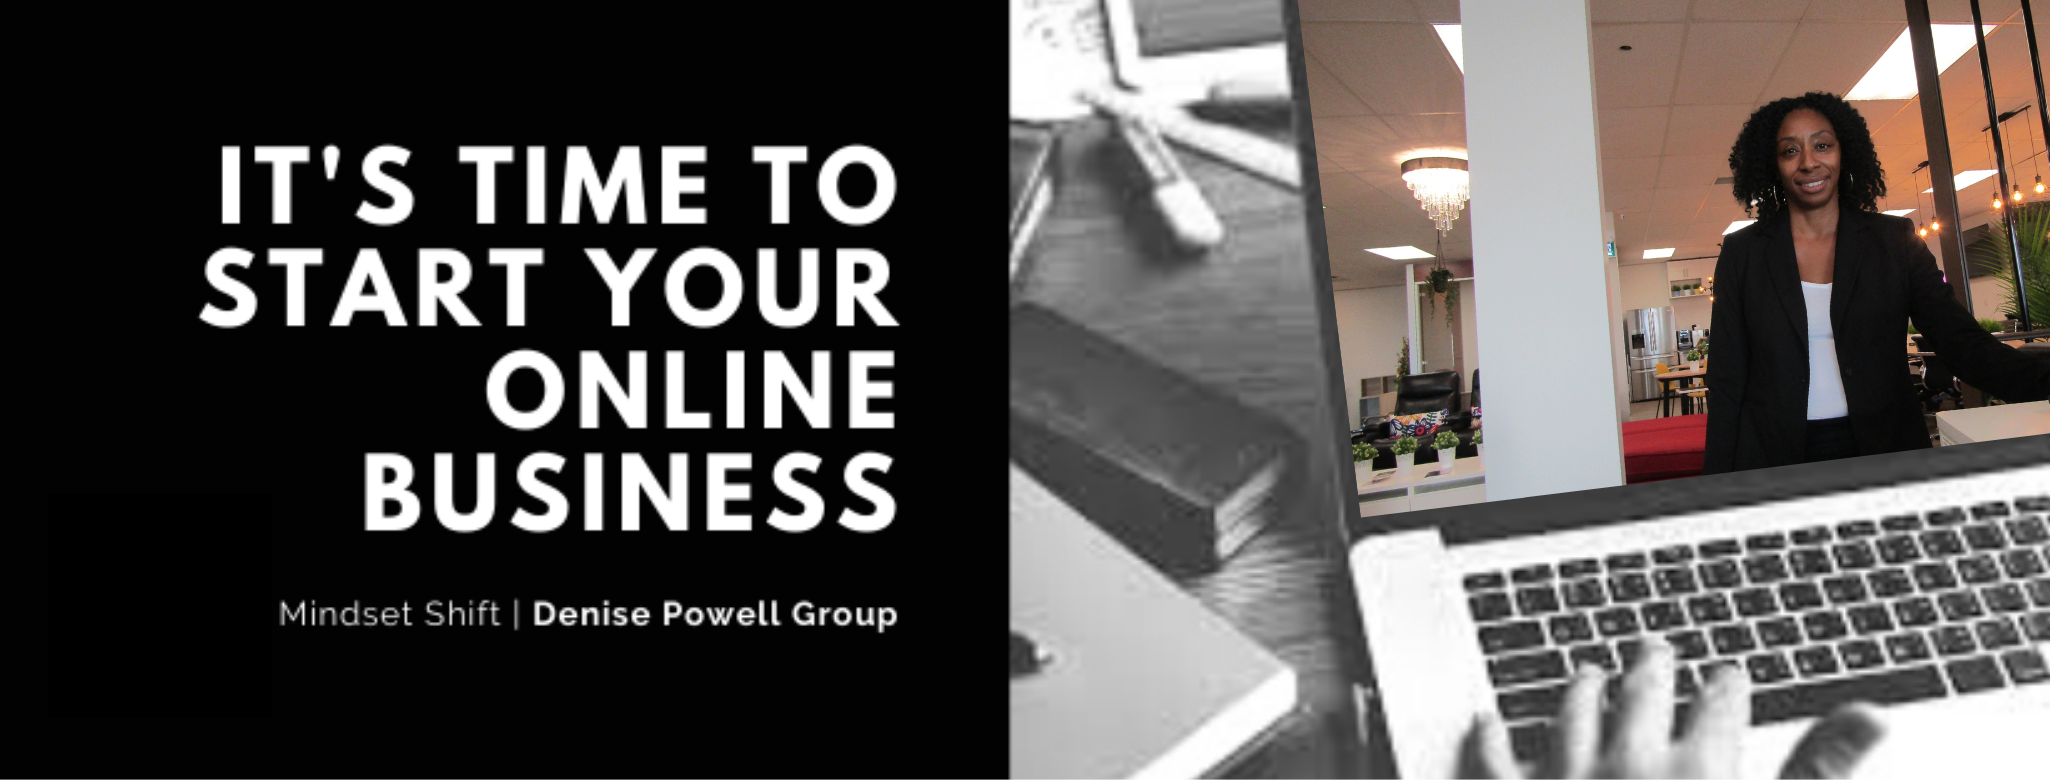 Learn how to start an online service business